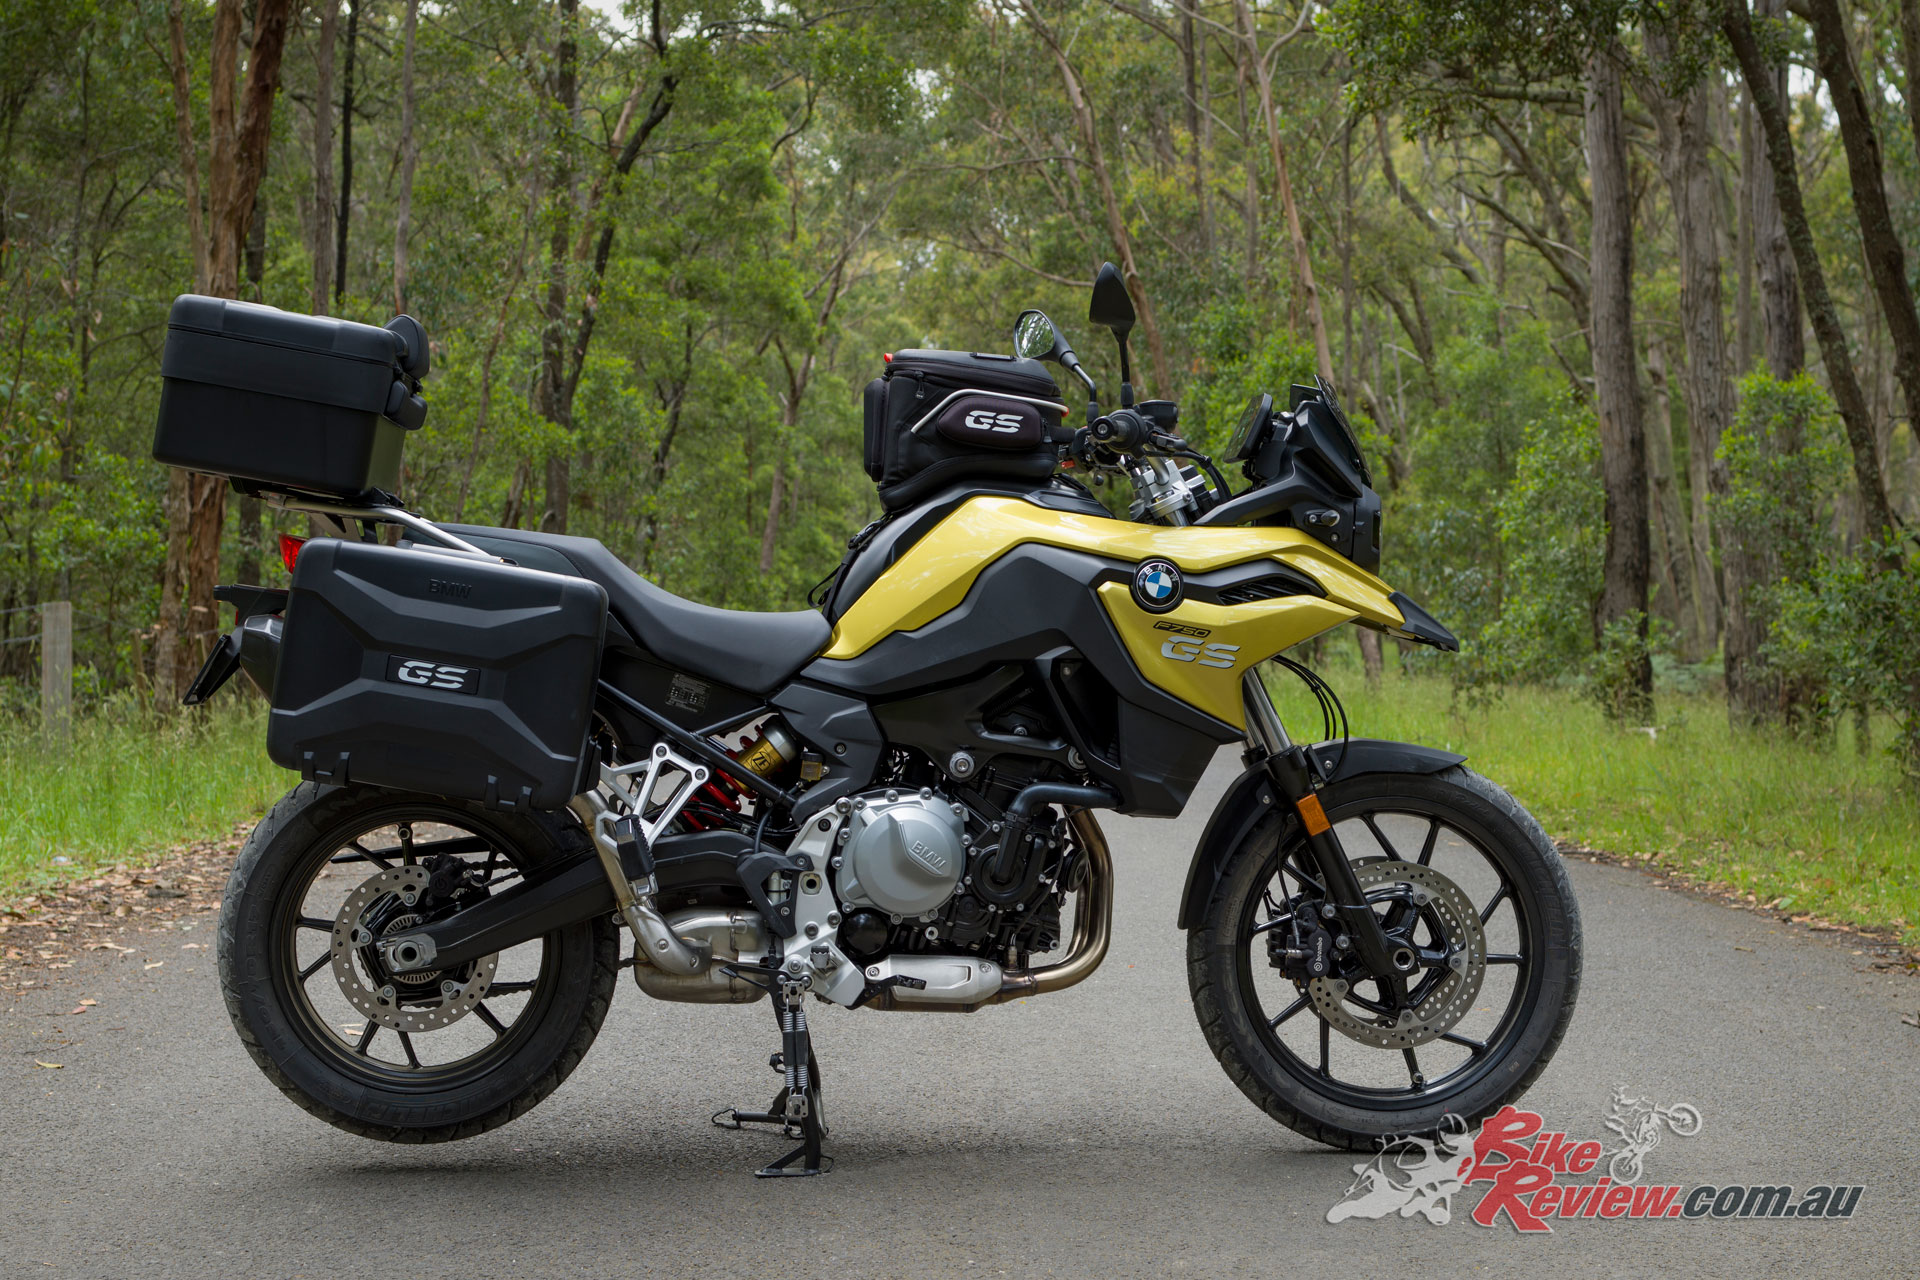 2019 BMW F 750 GS with full luggage loadout